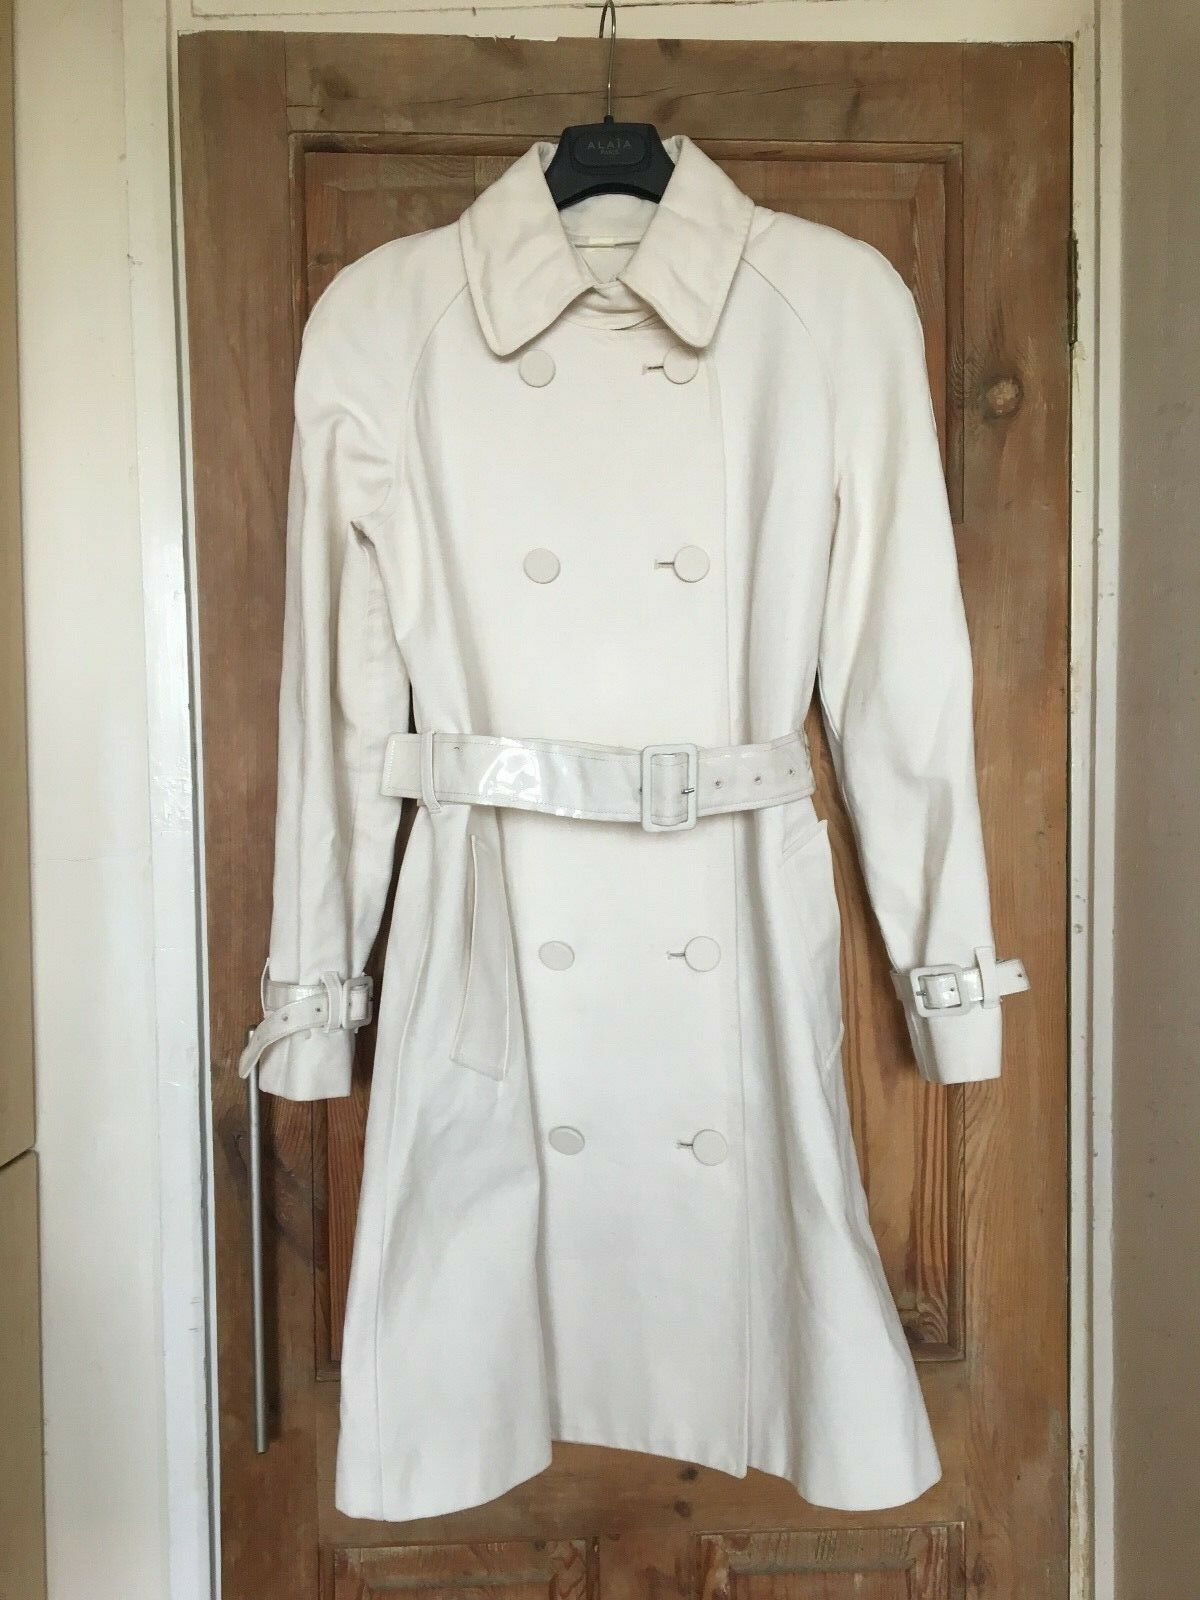 RICHARD NICOLL WOMEN'S CREAM IVORY WHITE PVC CANVAS TRENCH COAT BELT UK8 FRA36